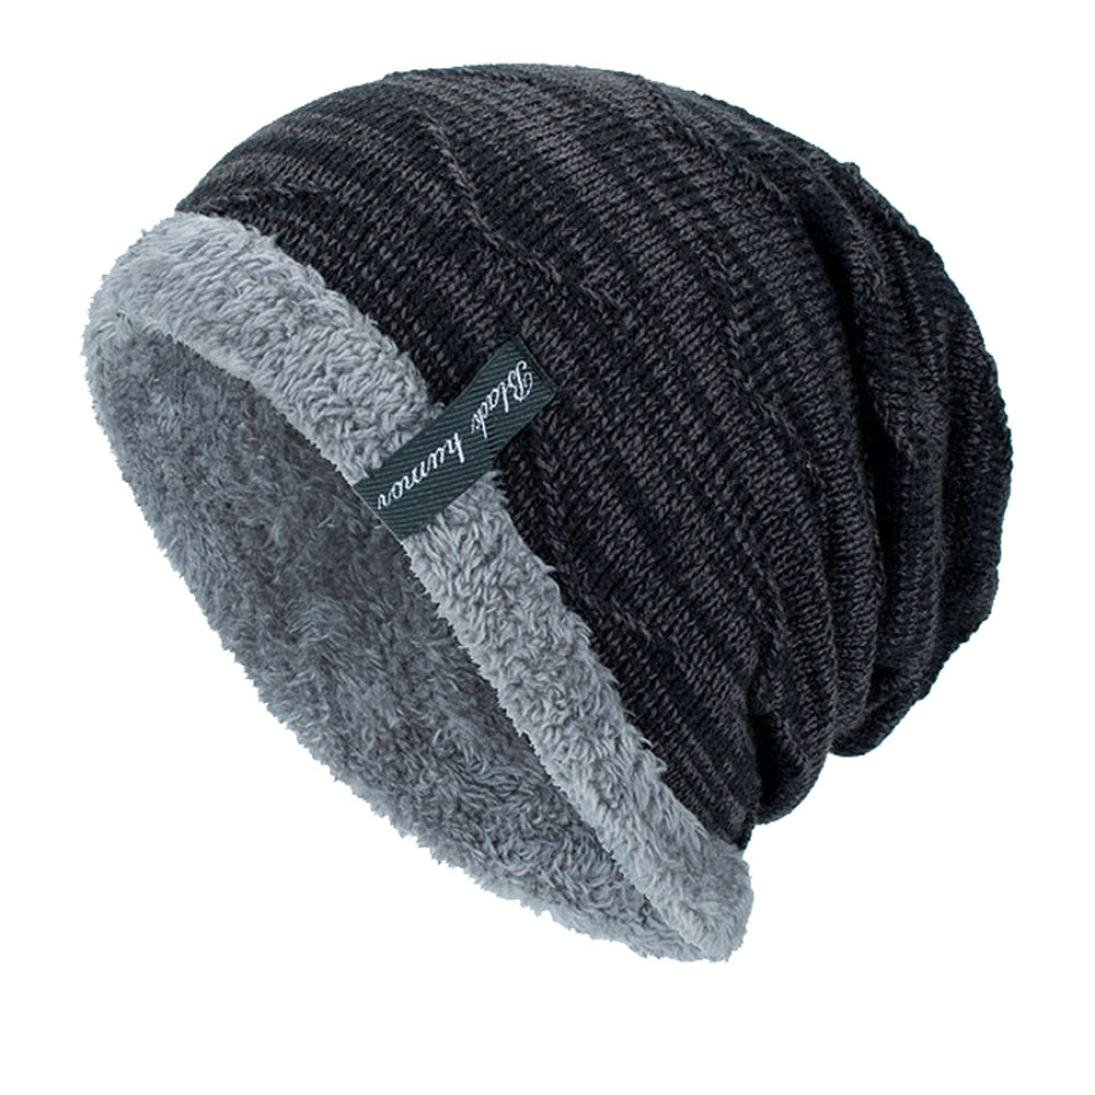 Fullfun Black Humor Unisex Winter Knitting Skull Cap Wool Slouchy Beanie Hat  (Black) at Amazon Men s Clothing store  094c5ee7c8c